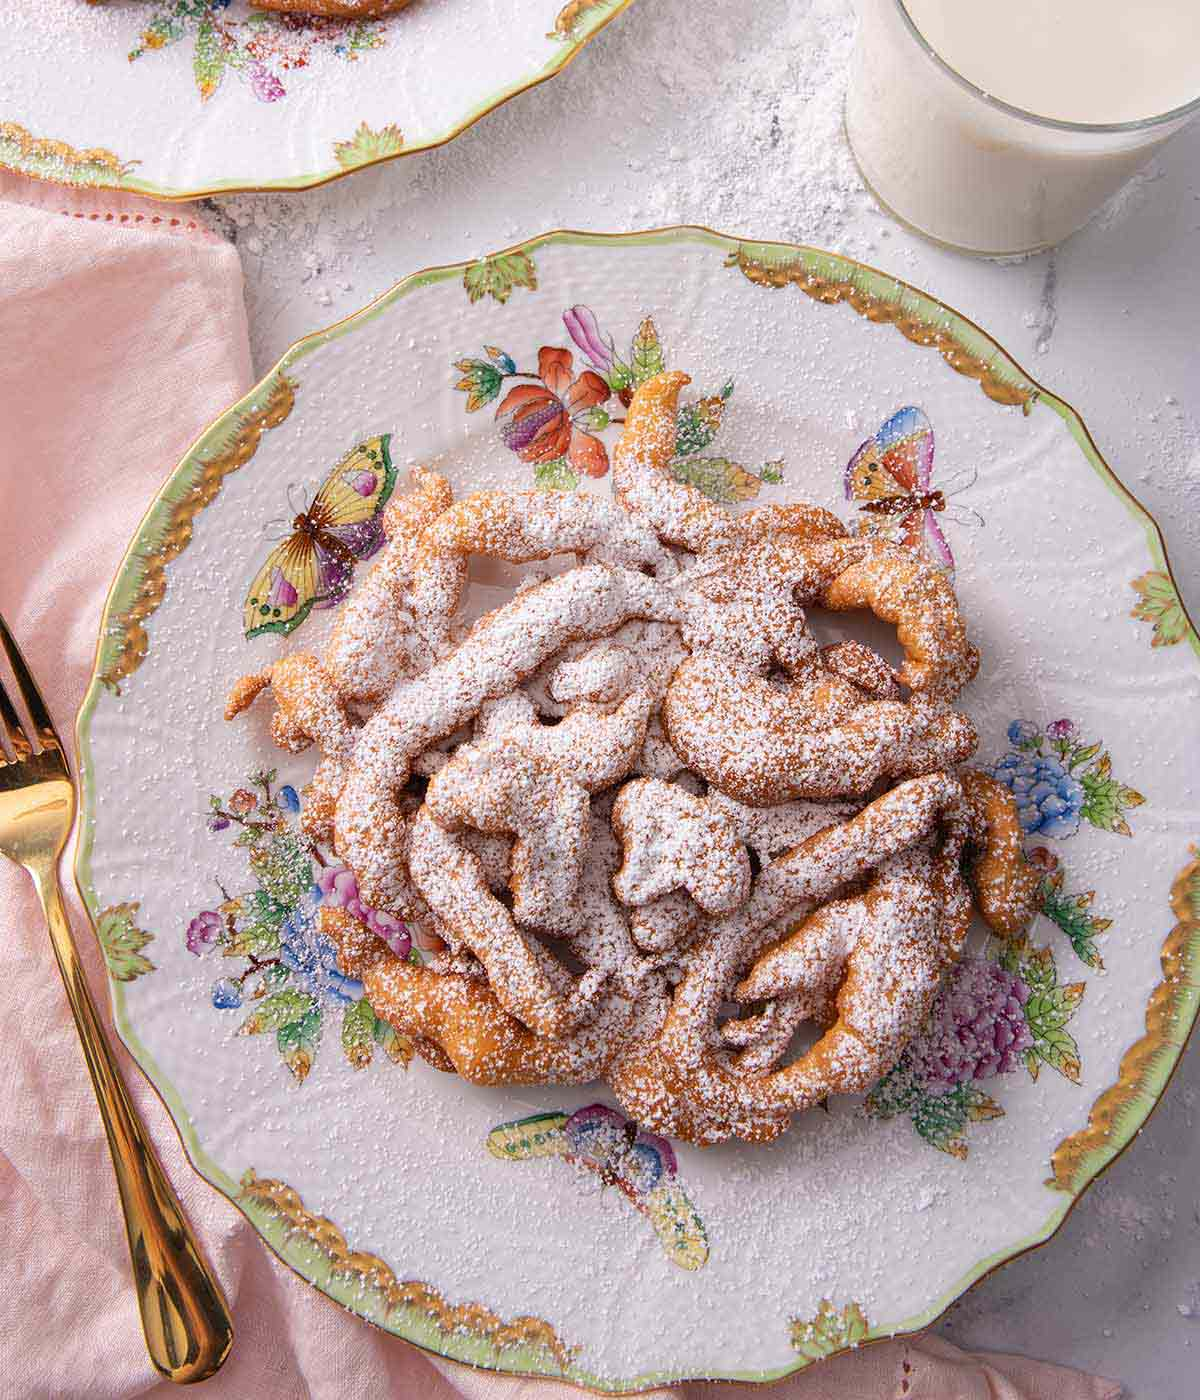 Overhead view of a powdered sugar covered funnel cake beside a gold colored fork and a pink linen napkin.